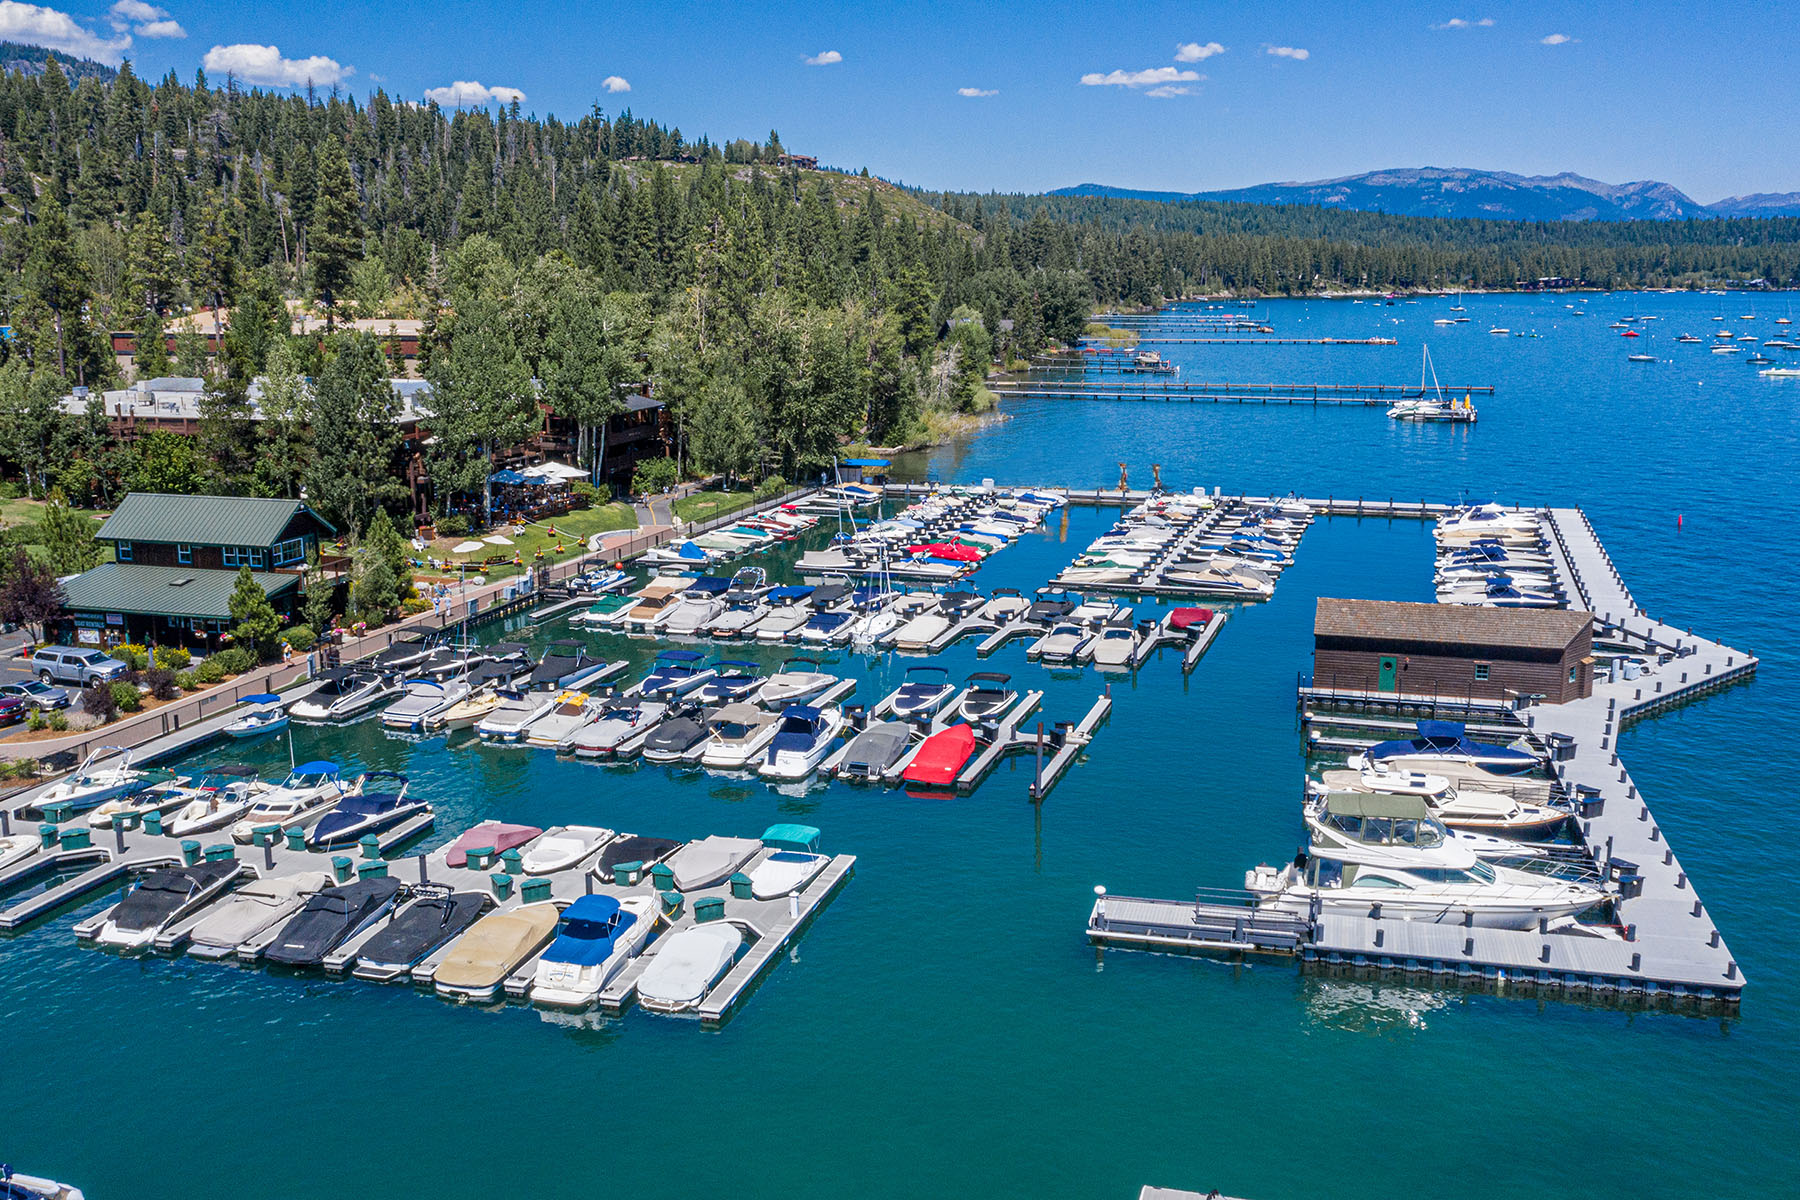 Additional photo for property listing at 700 N. Lake Blvd. #F-25, Tahoe City, CA 96145 700 N. Lake Blvd. #F-25 塔霍湖城, 加利福尼亚州 96145 美国